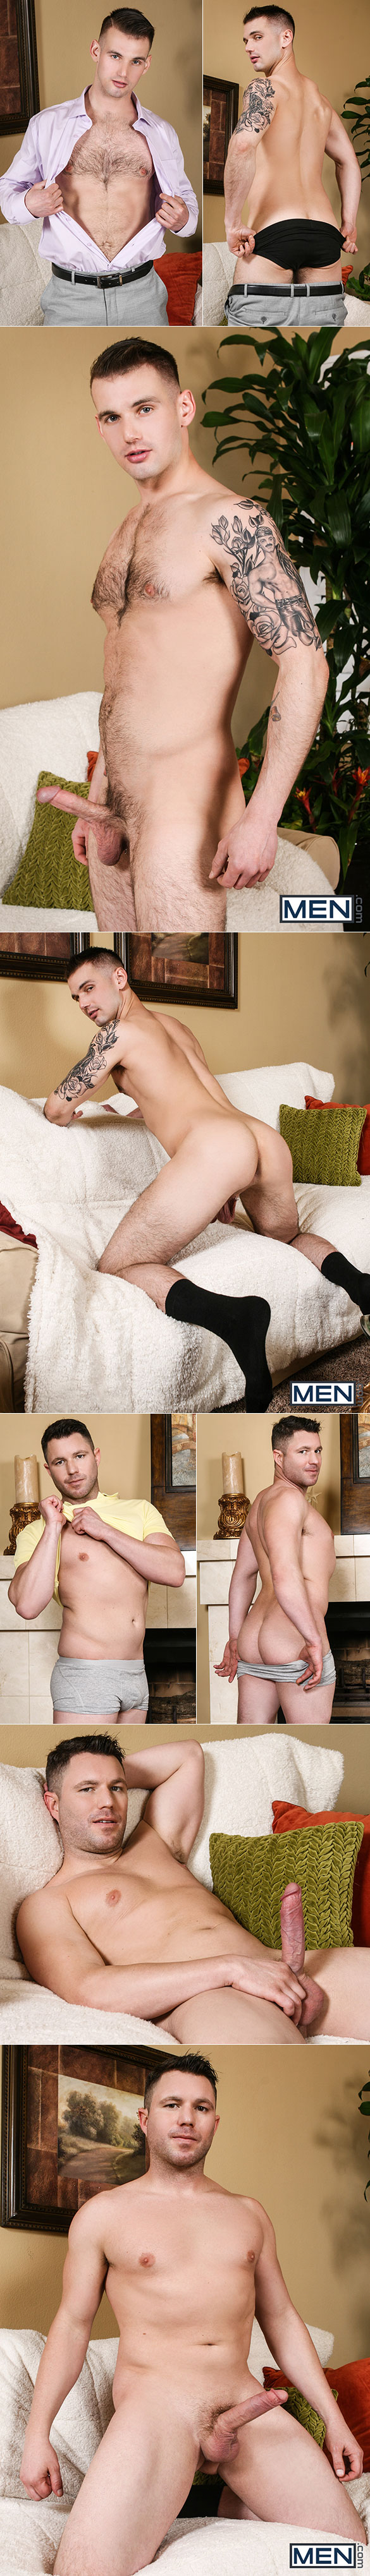 "Men.com: Travis James fucks Chris Harder in ""Working the Case"""